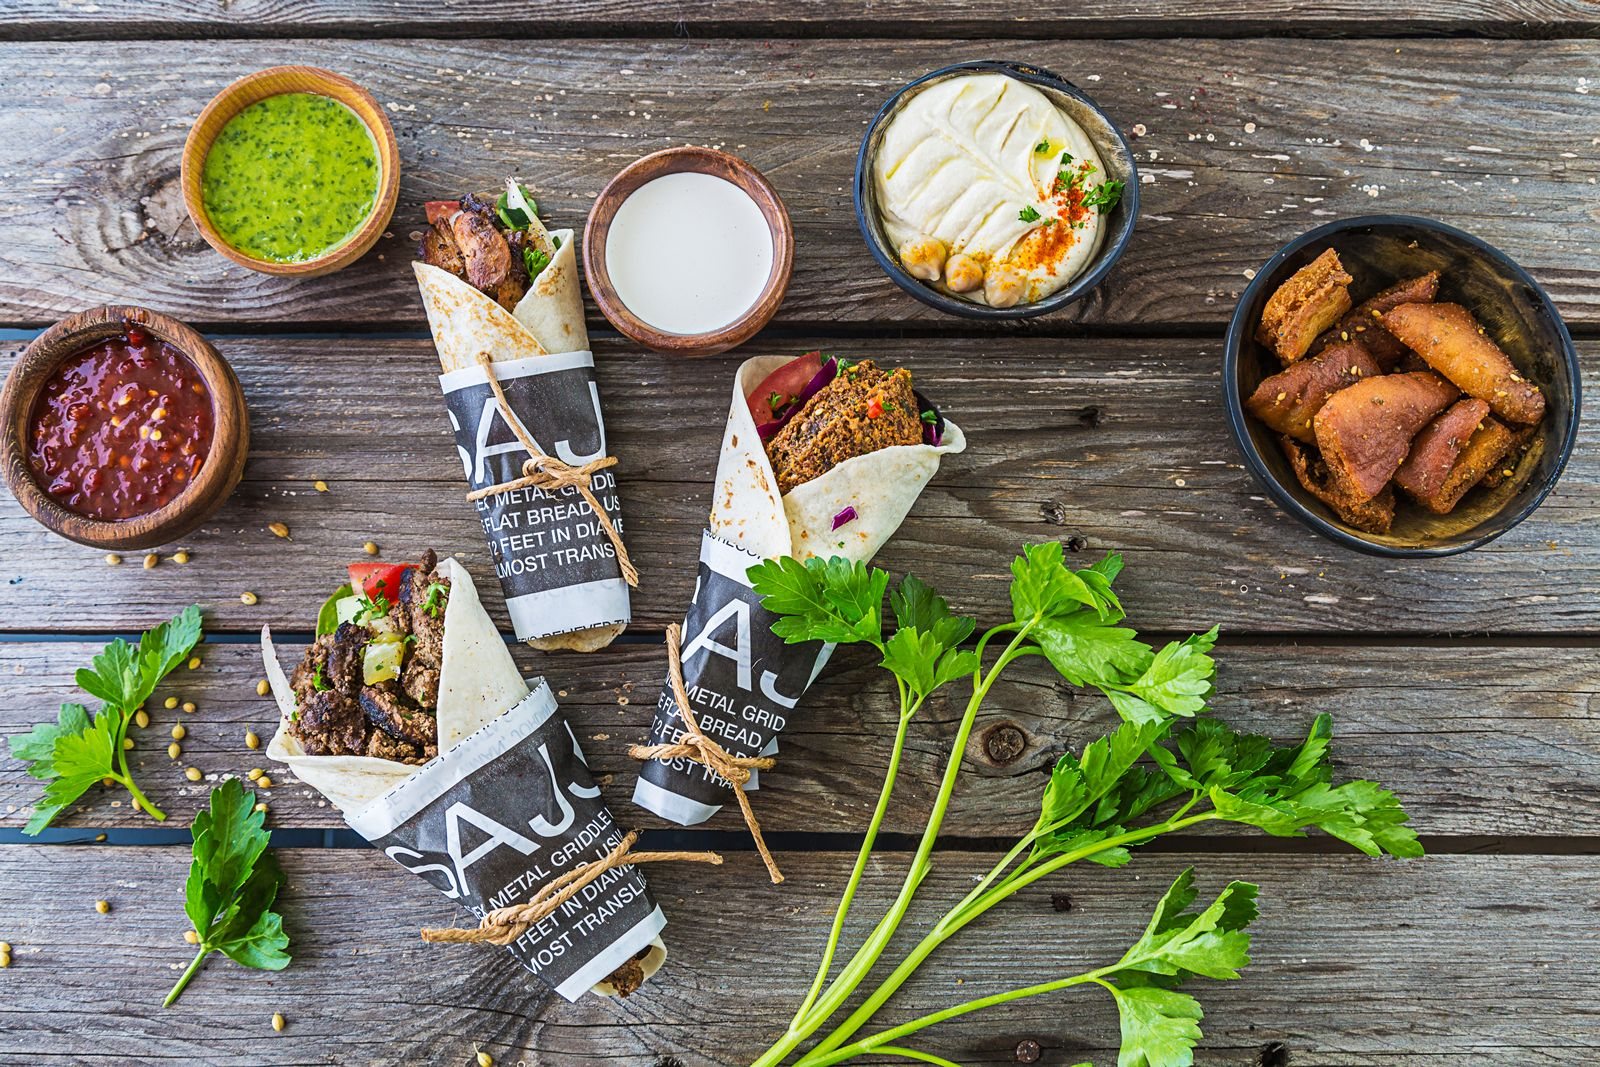 SAJJ Mediterranean is pursuing an aggressive expansion plan over the next twelve months that will bring its fresh, healthy, and customizable Middle Eastern eats to the California cities of Irvine, San Jose, and San Ramon, with at least 5 more on the way in 2019.